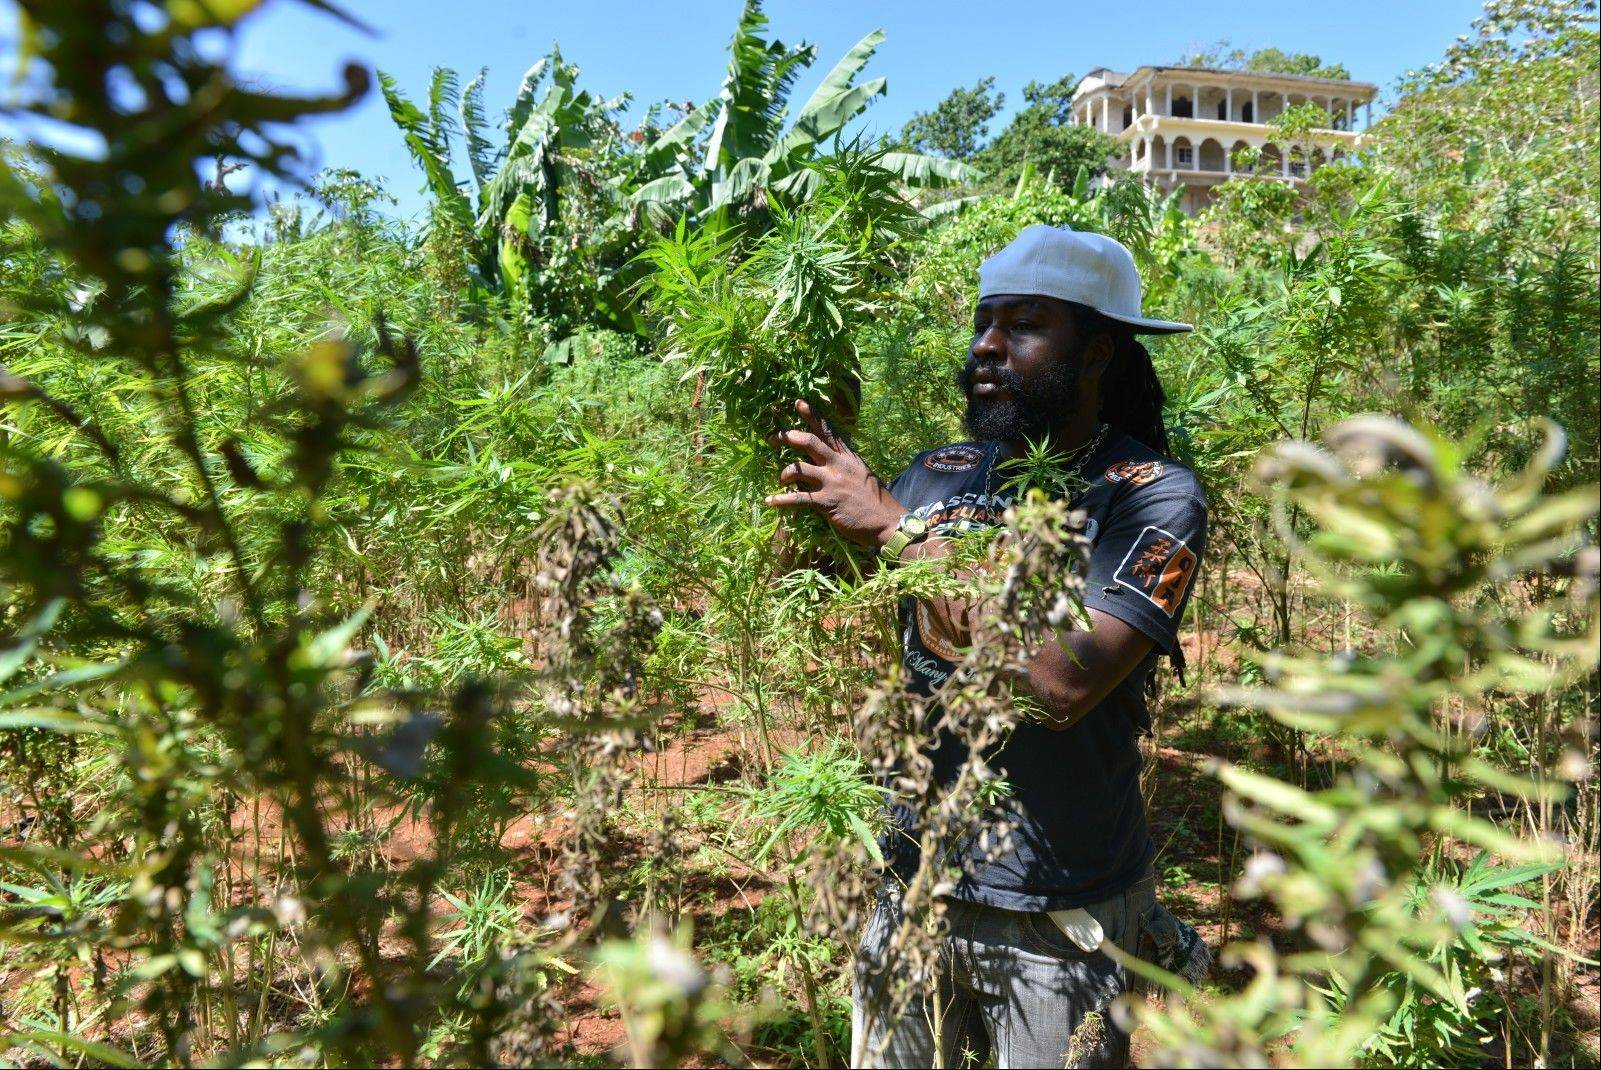 A farmer nicknamed Breezy shows his illegal patch of budding marijuana plants during a tour of his land in Jamaica's central mountain town of Nine Mile.